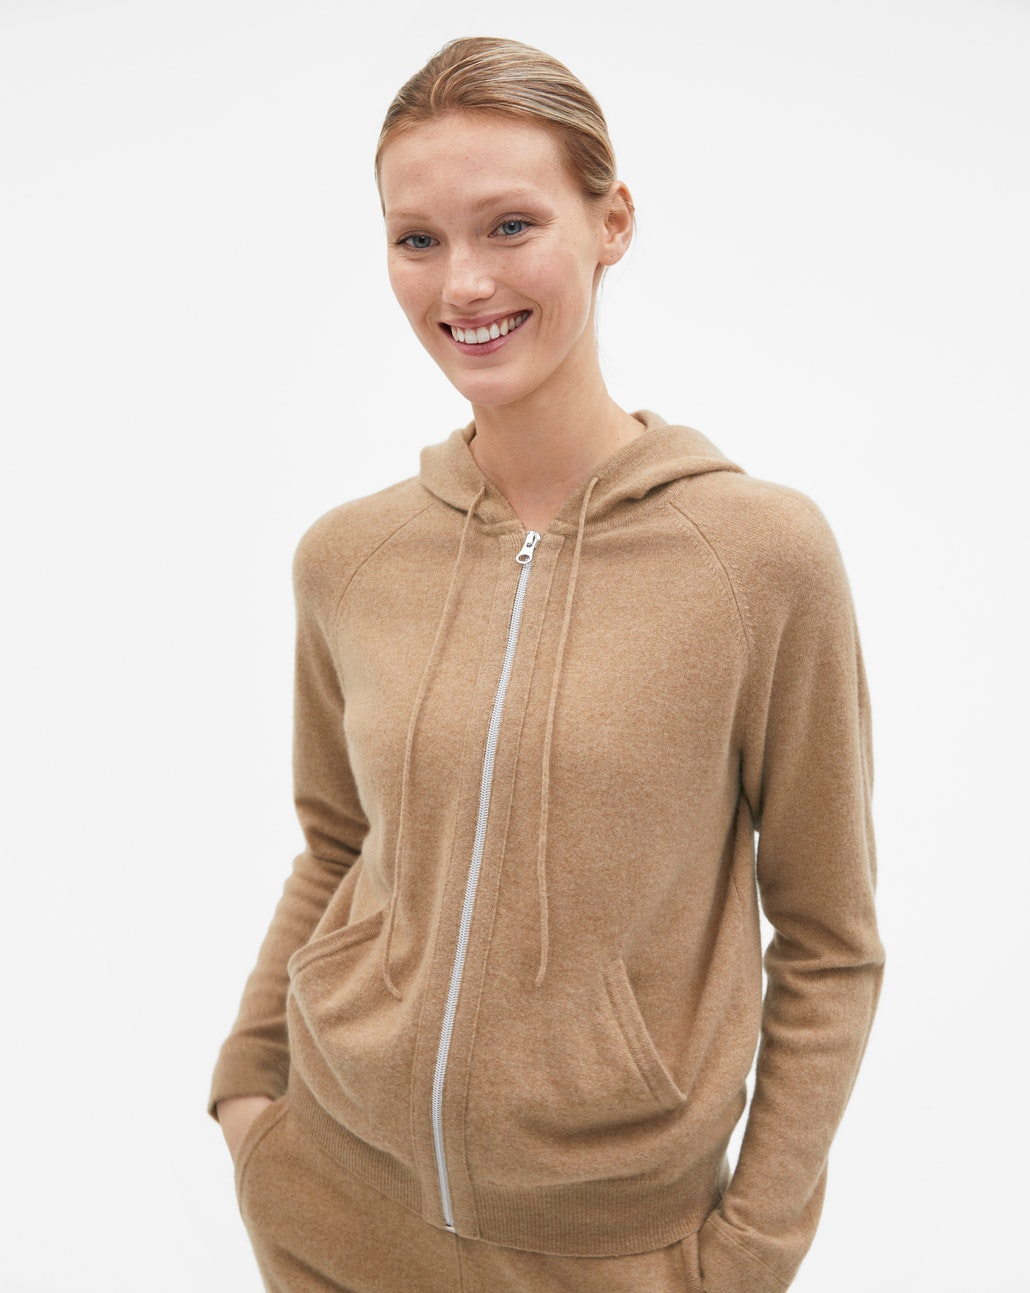 100% Cashmere hoodie : was £ 270, now £ 189.